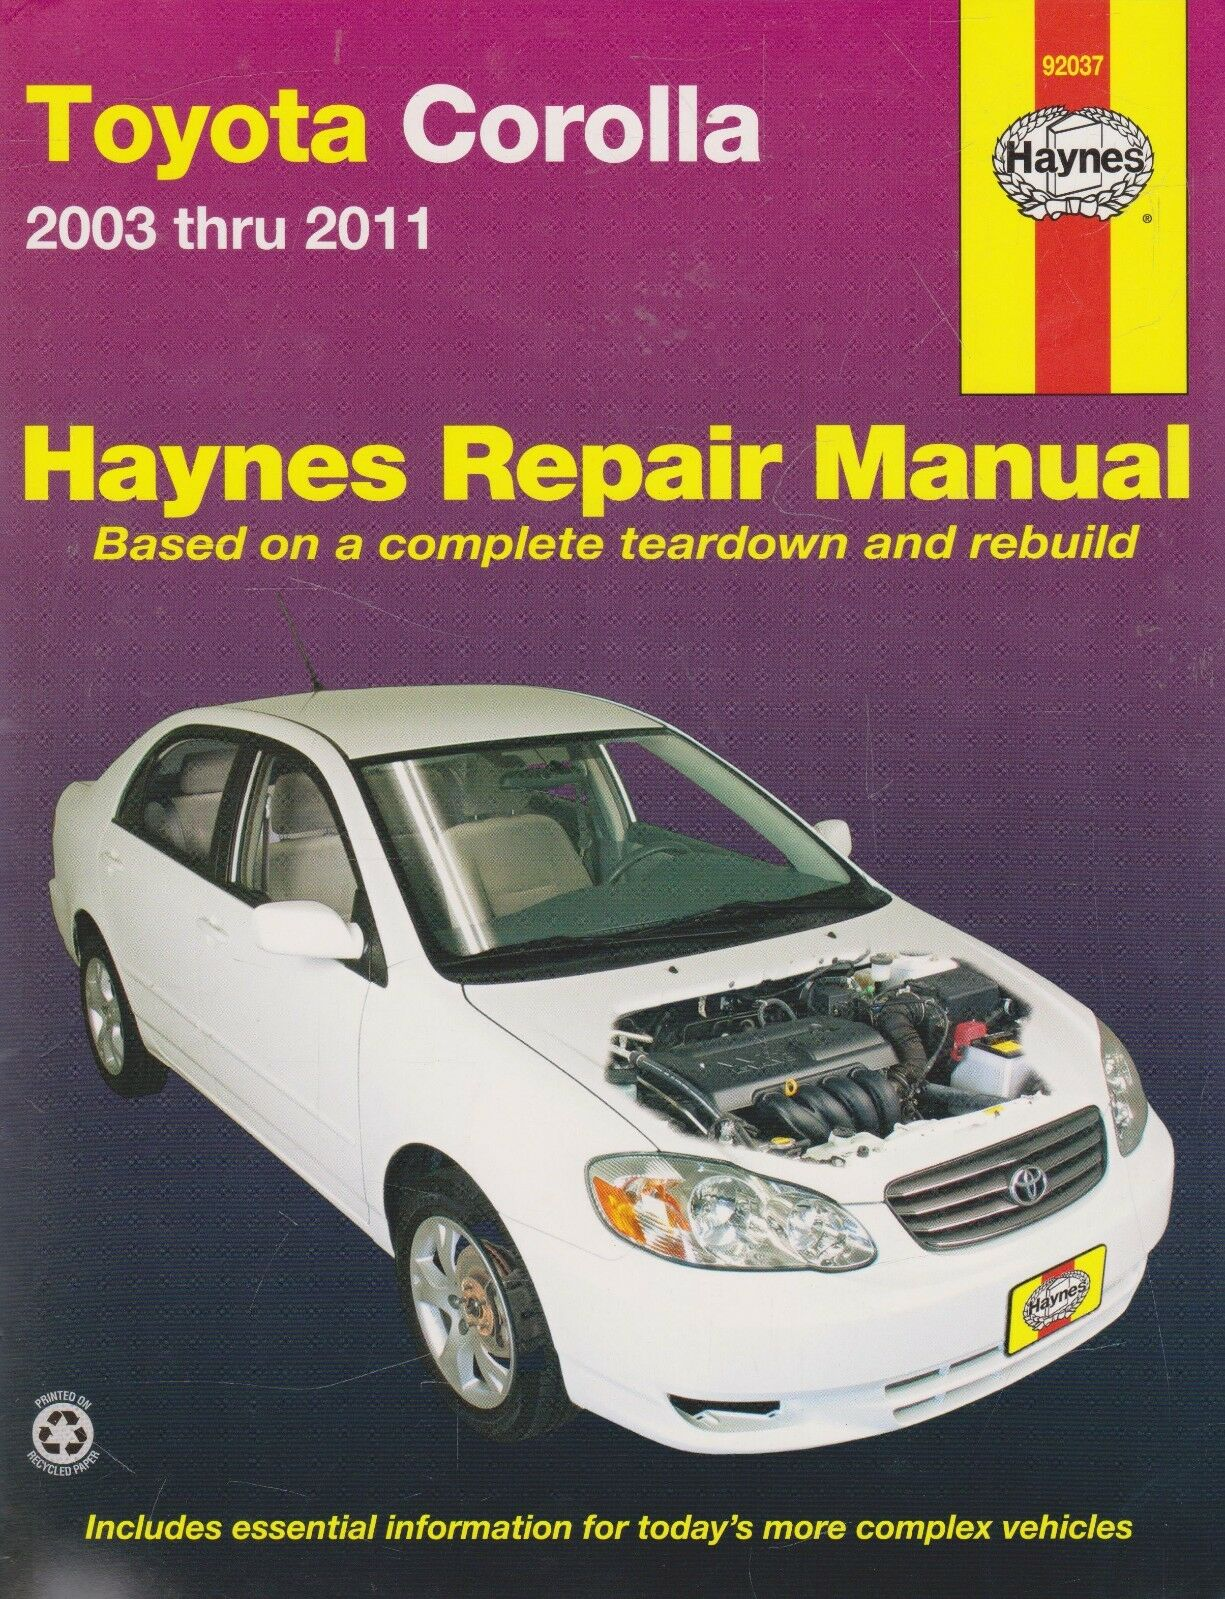 Toyota Corolla Repair Manual: Location